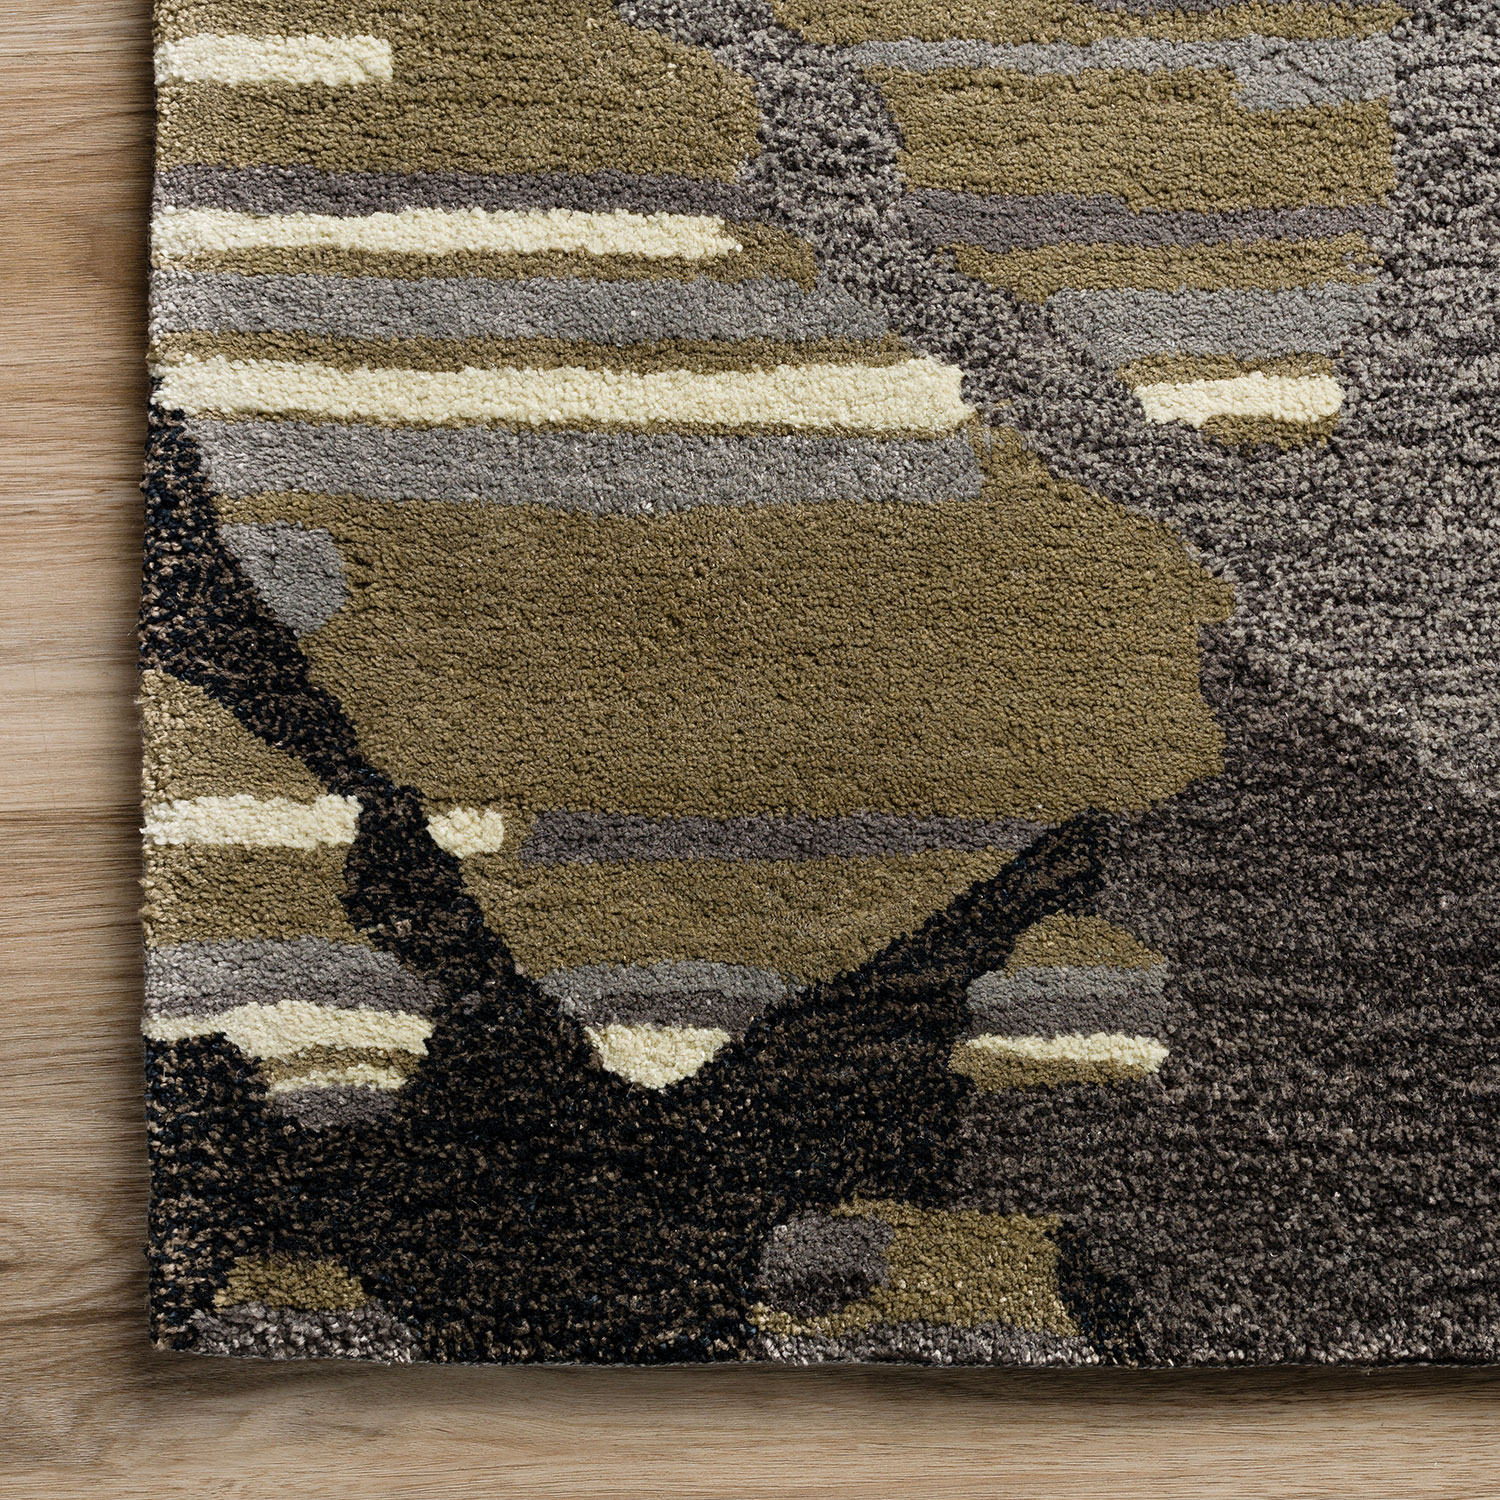 Sydney custom quality rug photo